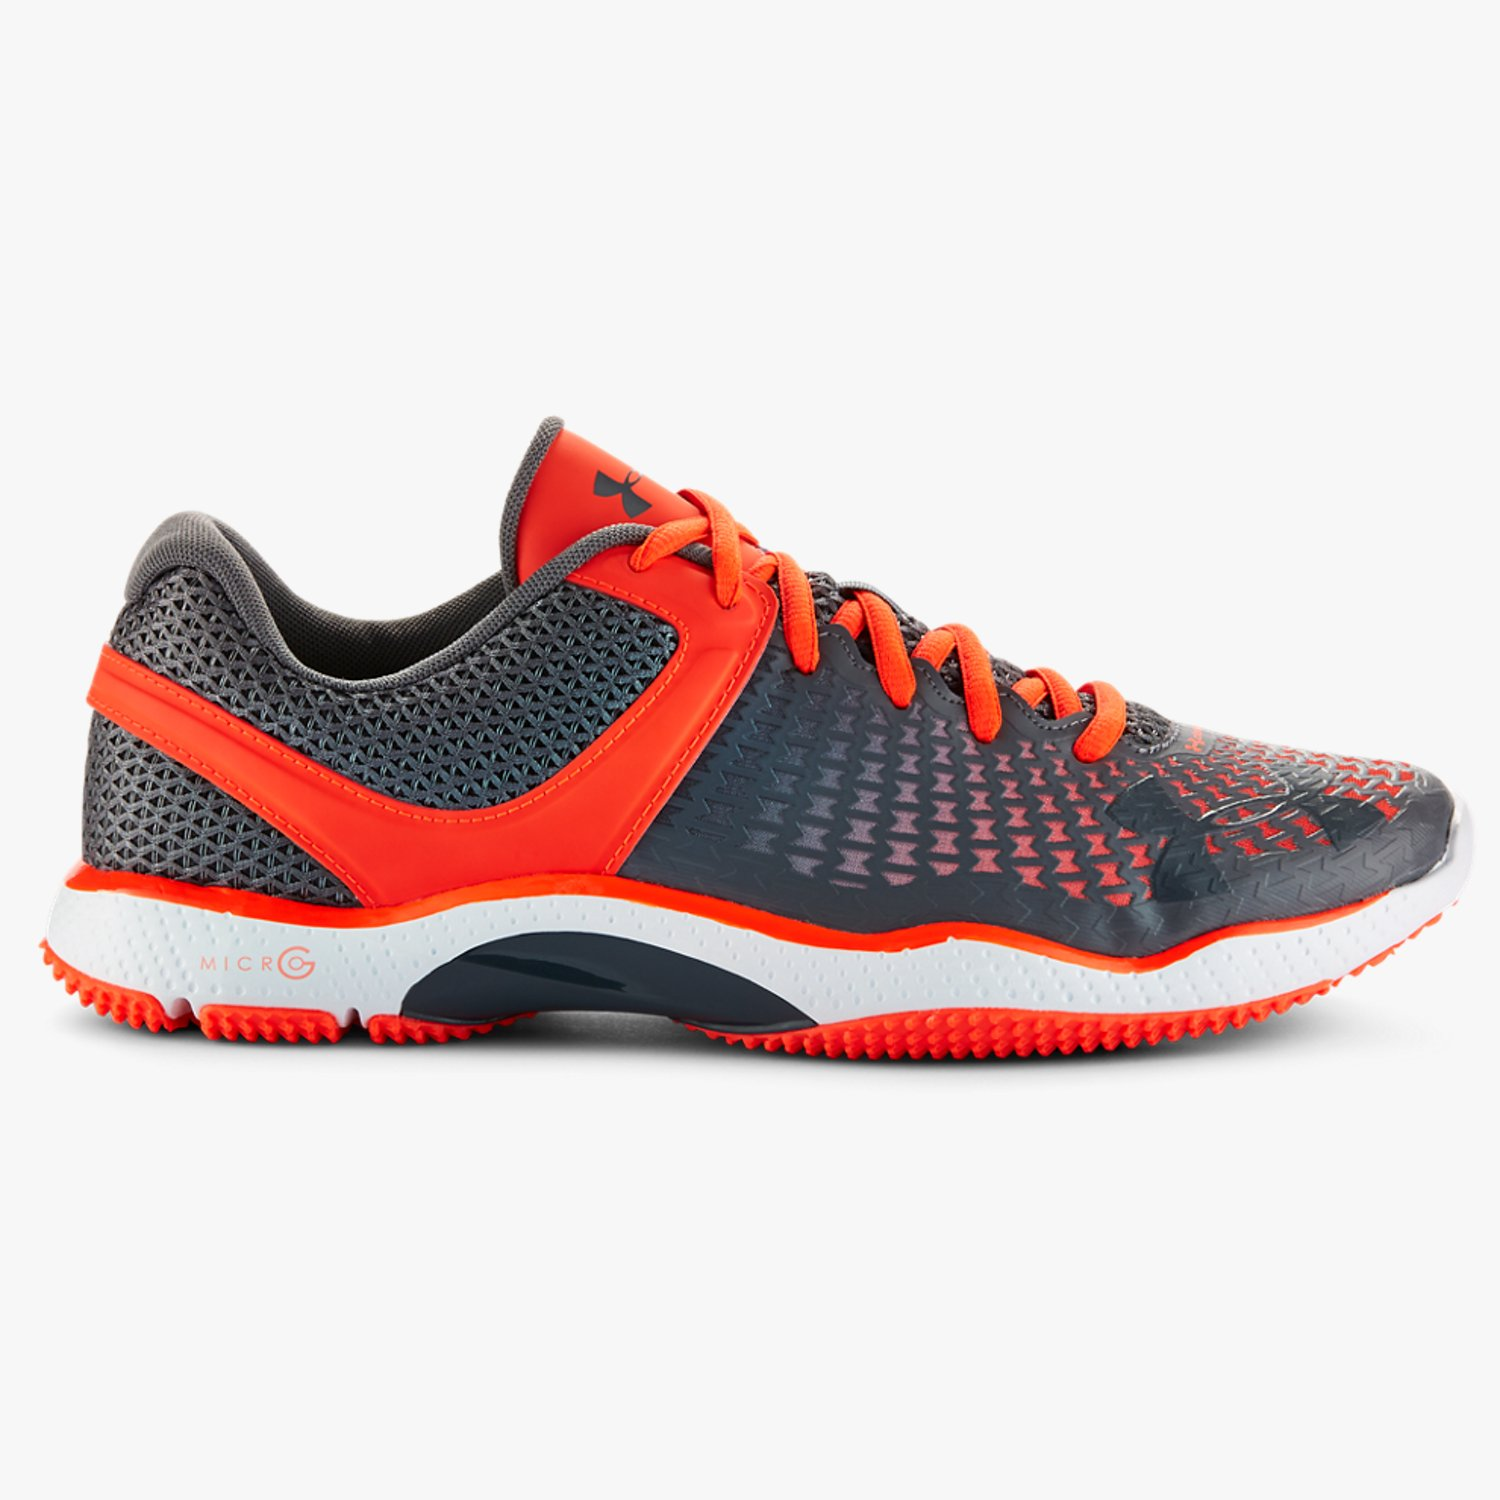 Under Armour UA Micro G Elevate Training Shoes Bolt Orange/White/Lead-30